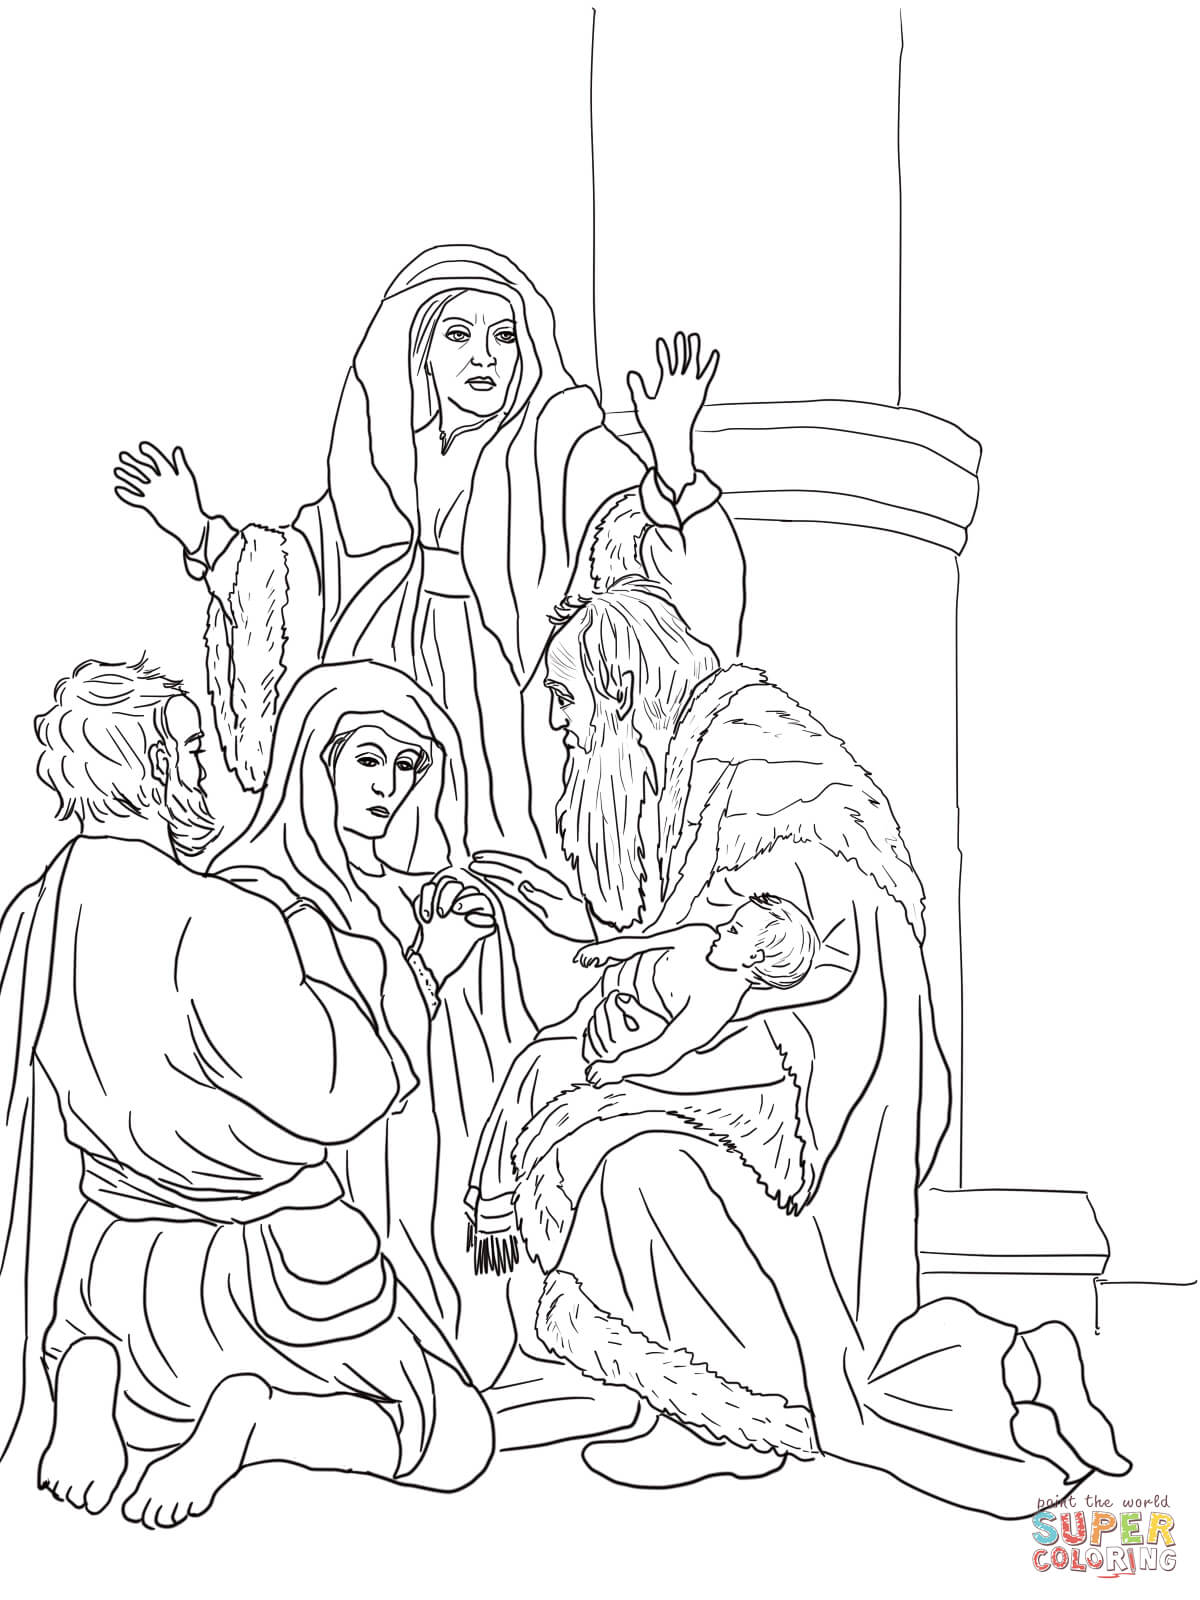 Elisha Helps Widow coloring page | Free Printable Coloring Pages | 1600x1200